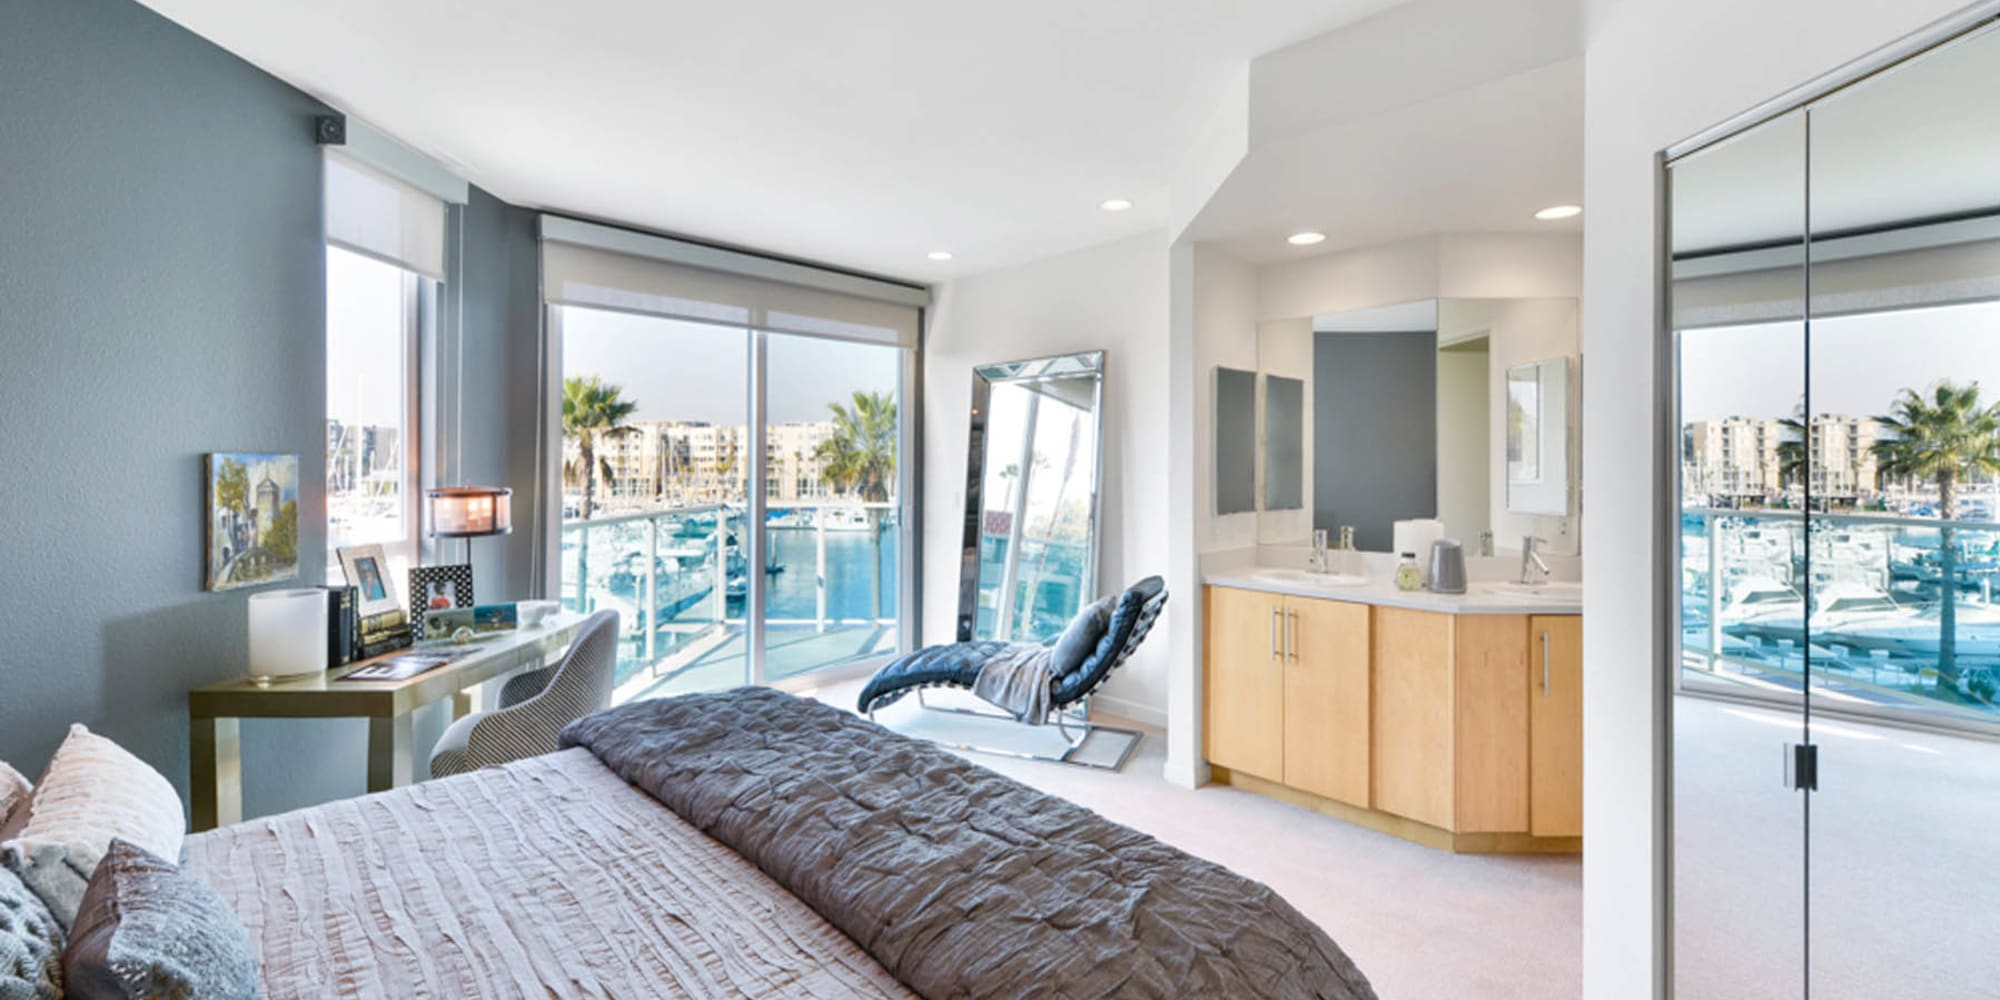 Floor-to-ceiling windows and plush carpeting in the primary bedroom of model luxury apartment at Esprit Marina del Rey in Marina Del Rey, California